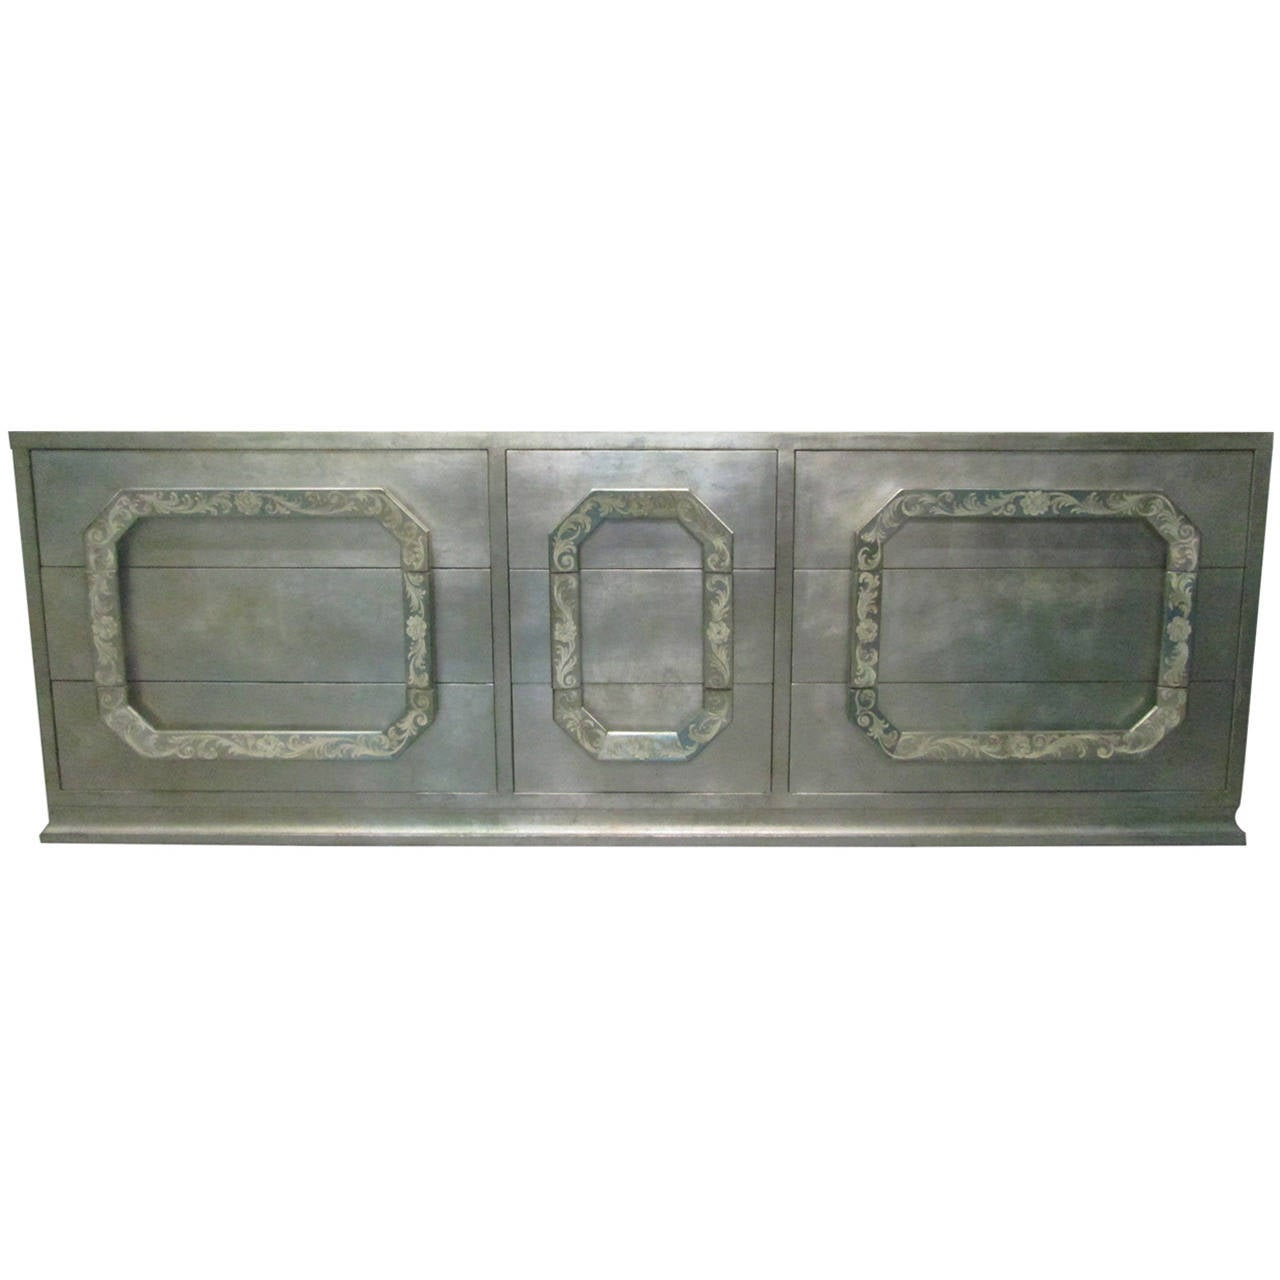 Silver Leaf Dresser in the style of James Mont